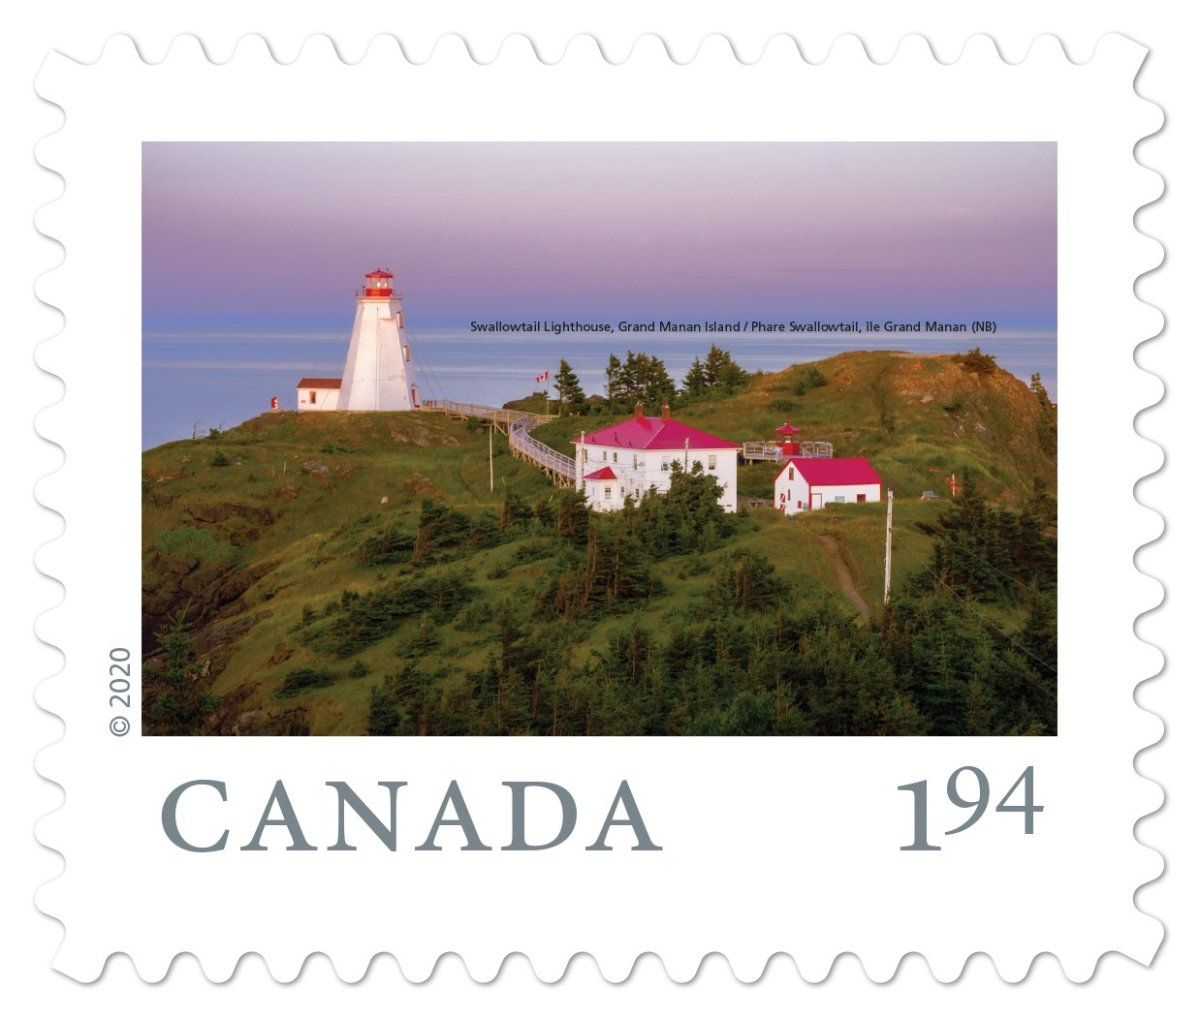 The Swallowtail Lighthouse on Grand Manan Island, N.B. is shown on a Canada Post stamp in this handout photo. Canada Post has released a set of nine stamps that feature stunning views from across Canada, and three of them feature scenes from the Maritimes.